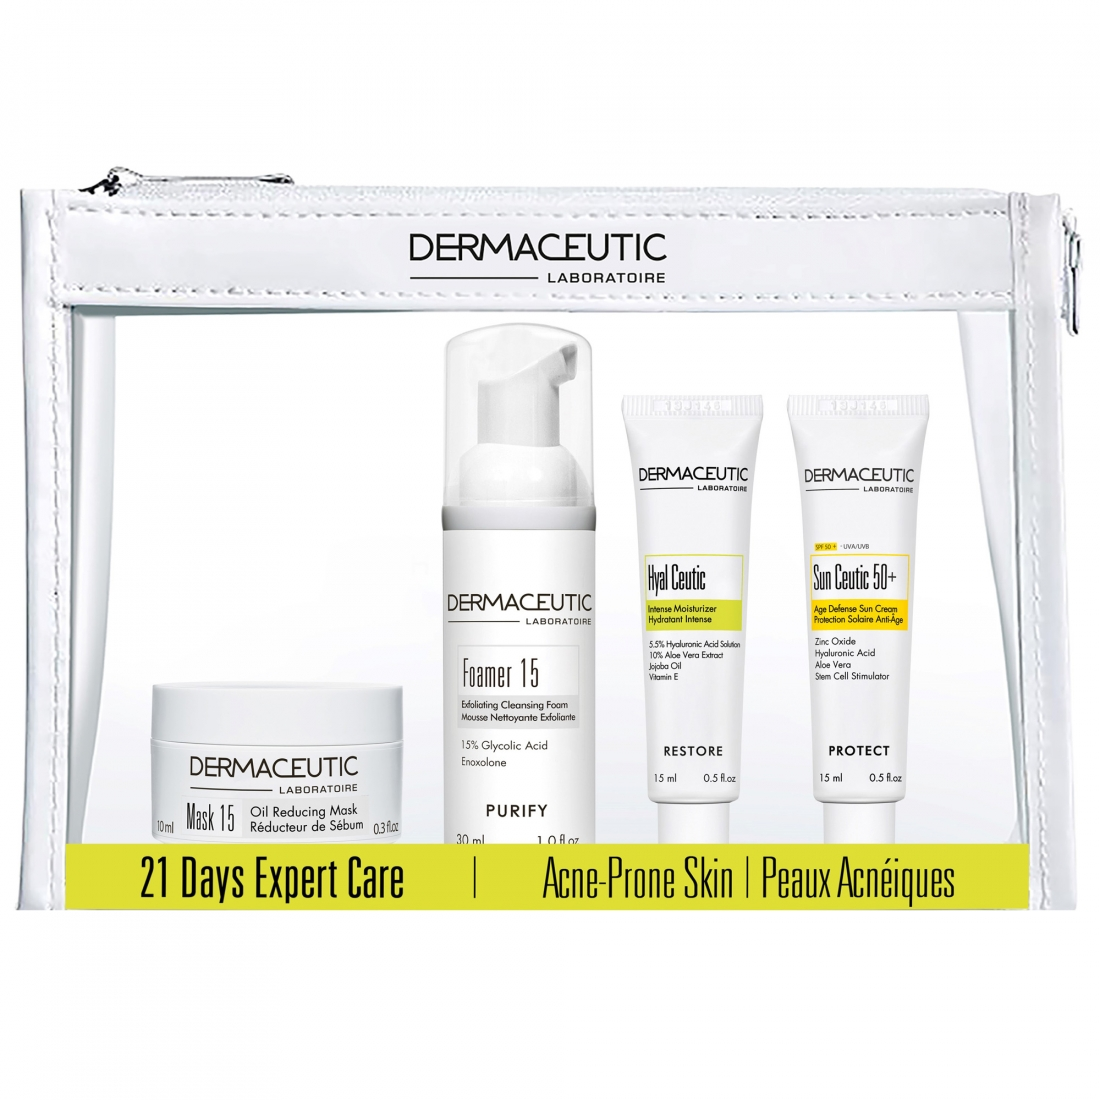 Dermaceutic 21 Days Expert Care Kit Acne Prone Skin